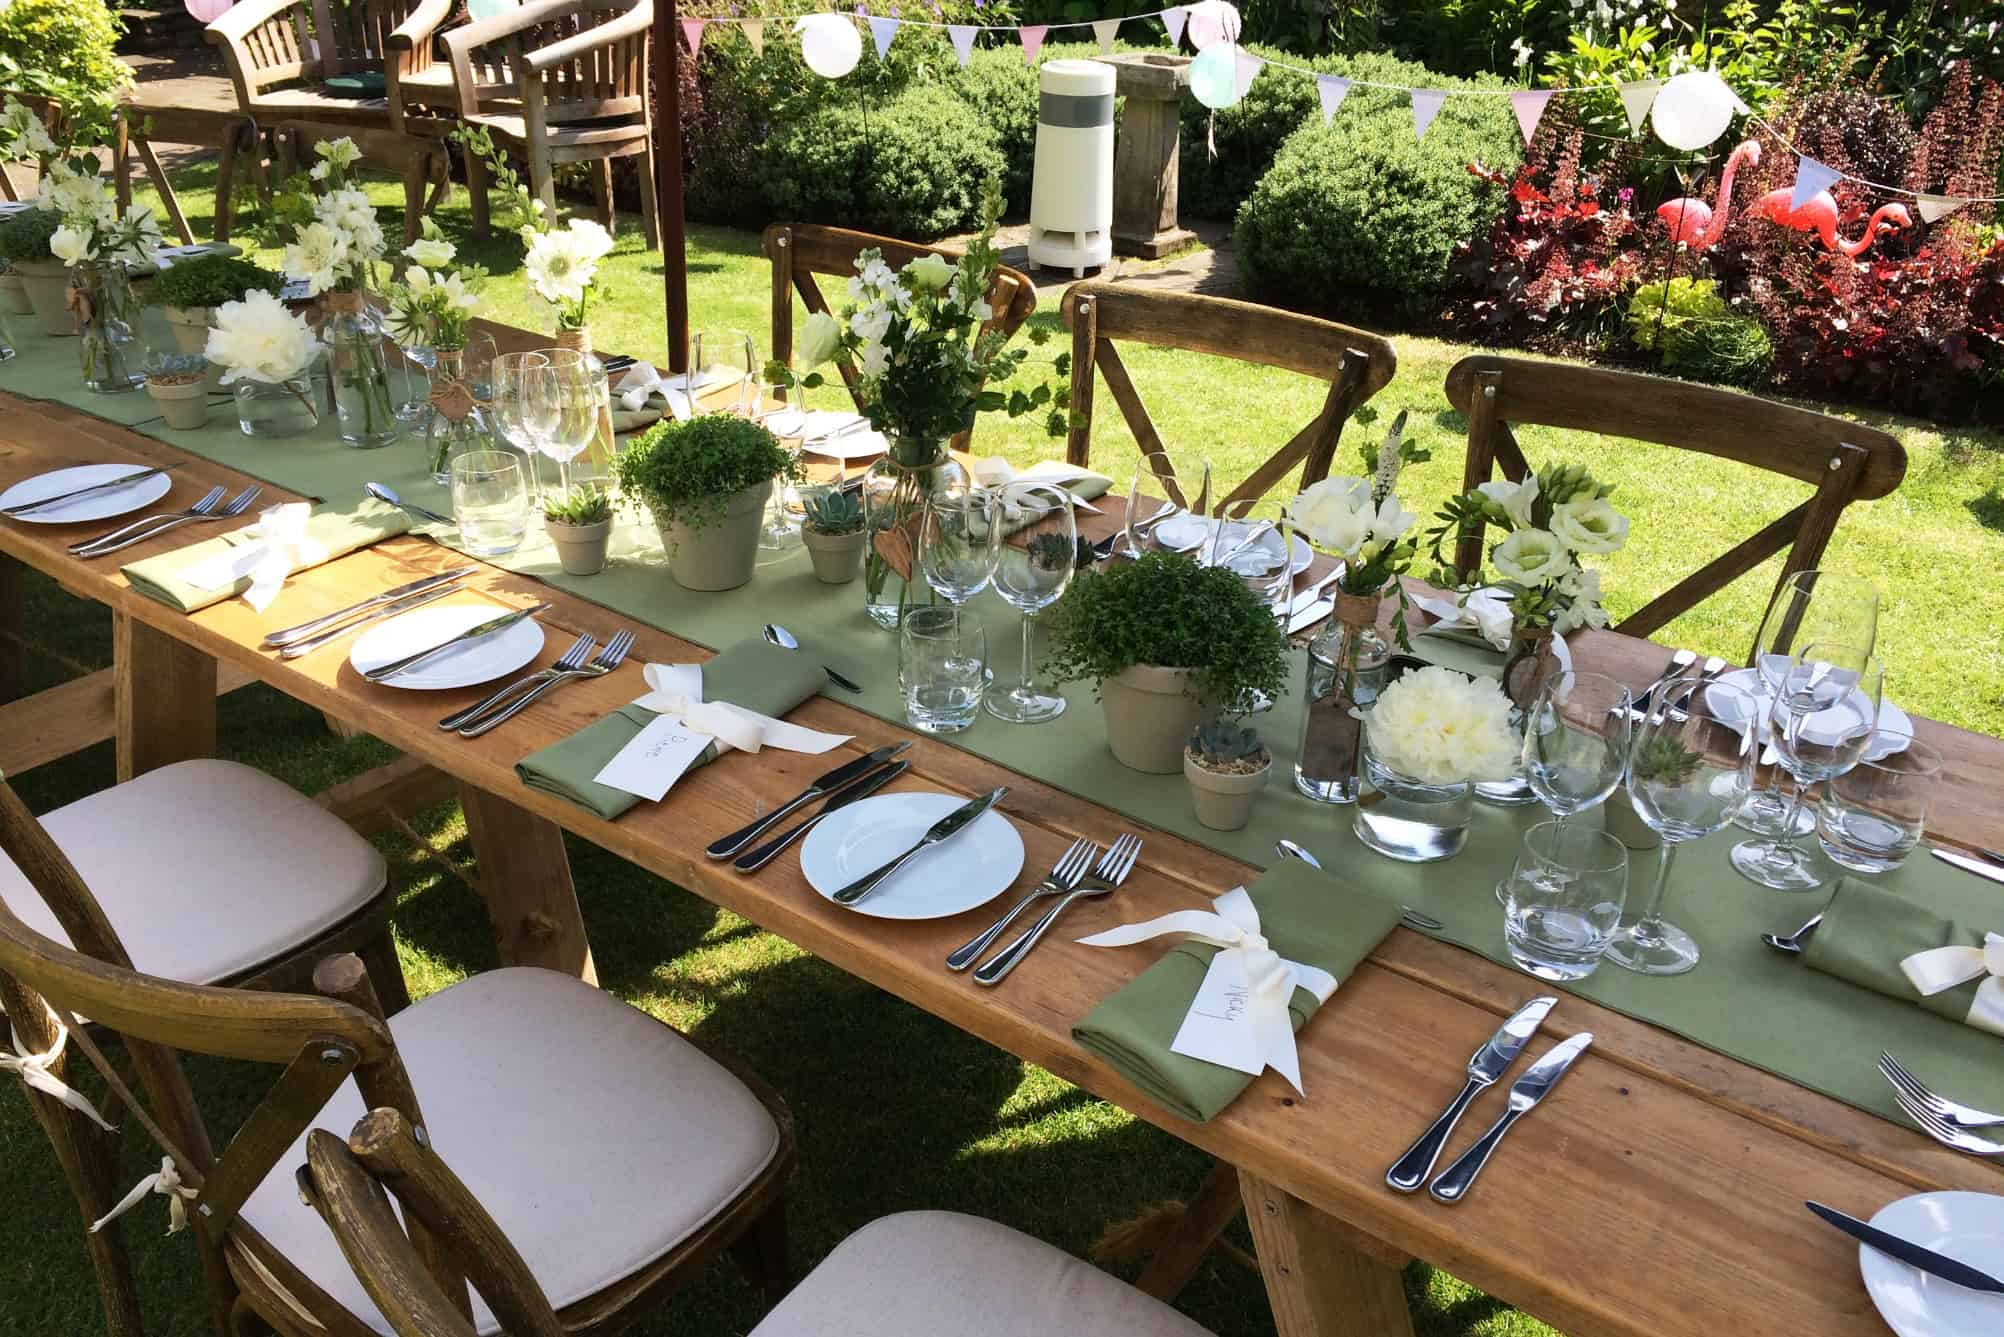 Alfresco dining at a beautiful rustic table